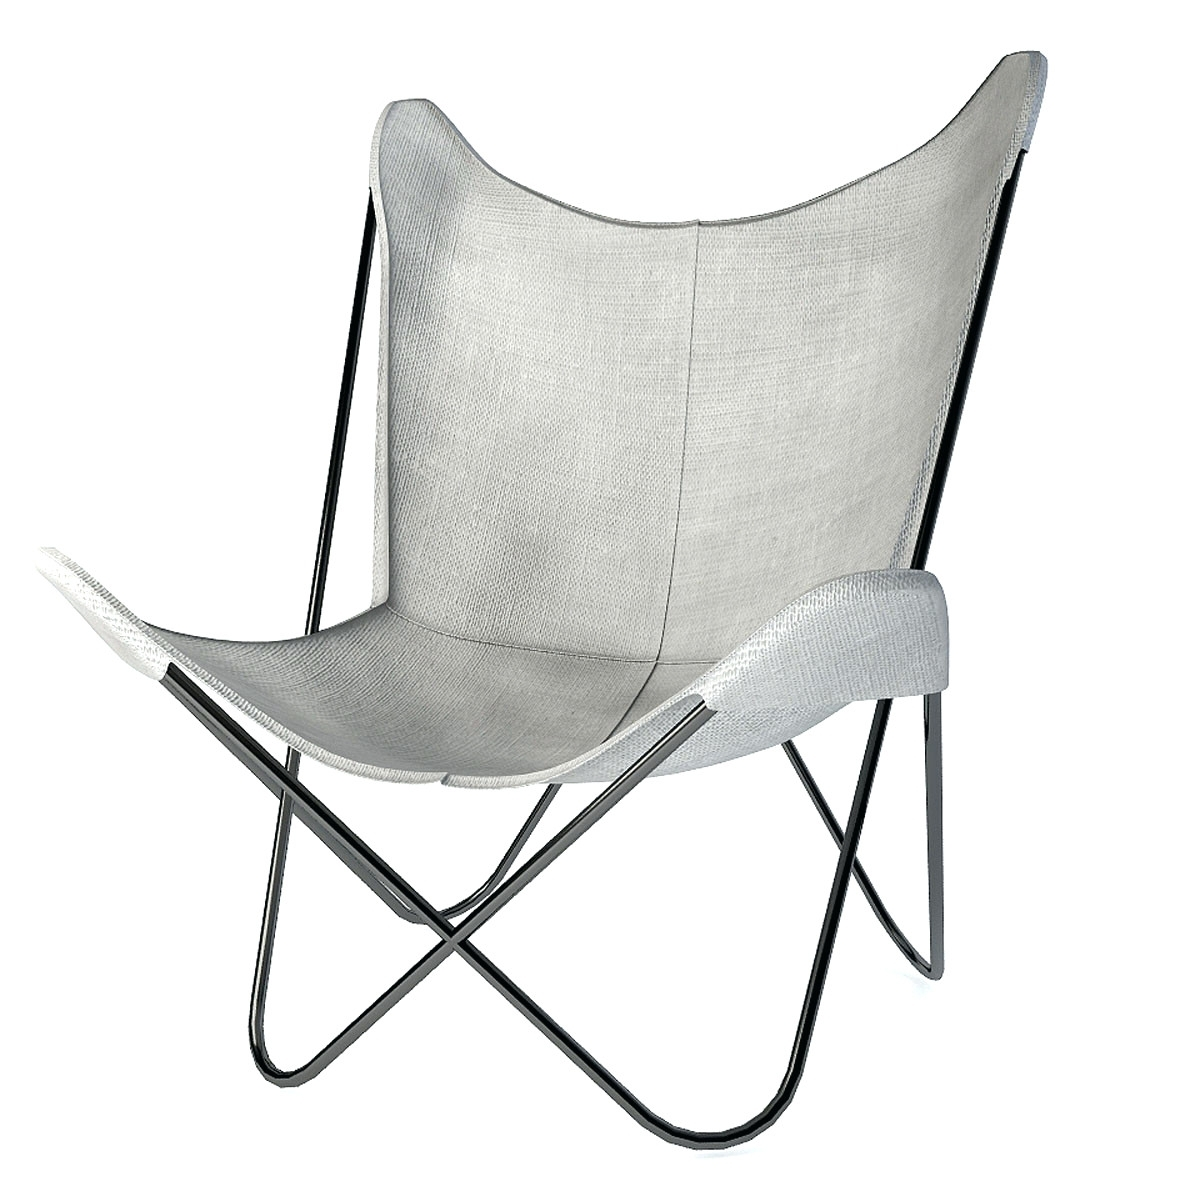 Chaise Lounge Chairs At Kohls Within Famous Kohl's Student Lounge Butterfly Chair • Lounge Chairs Ideas (View 3 of 15)